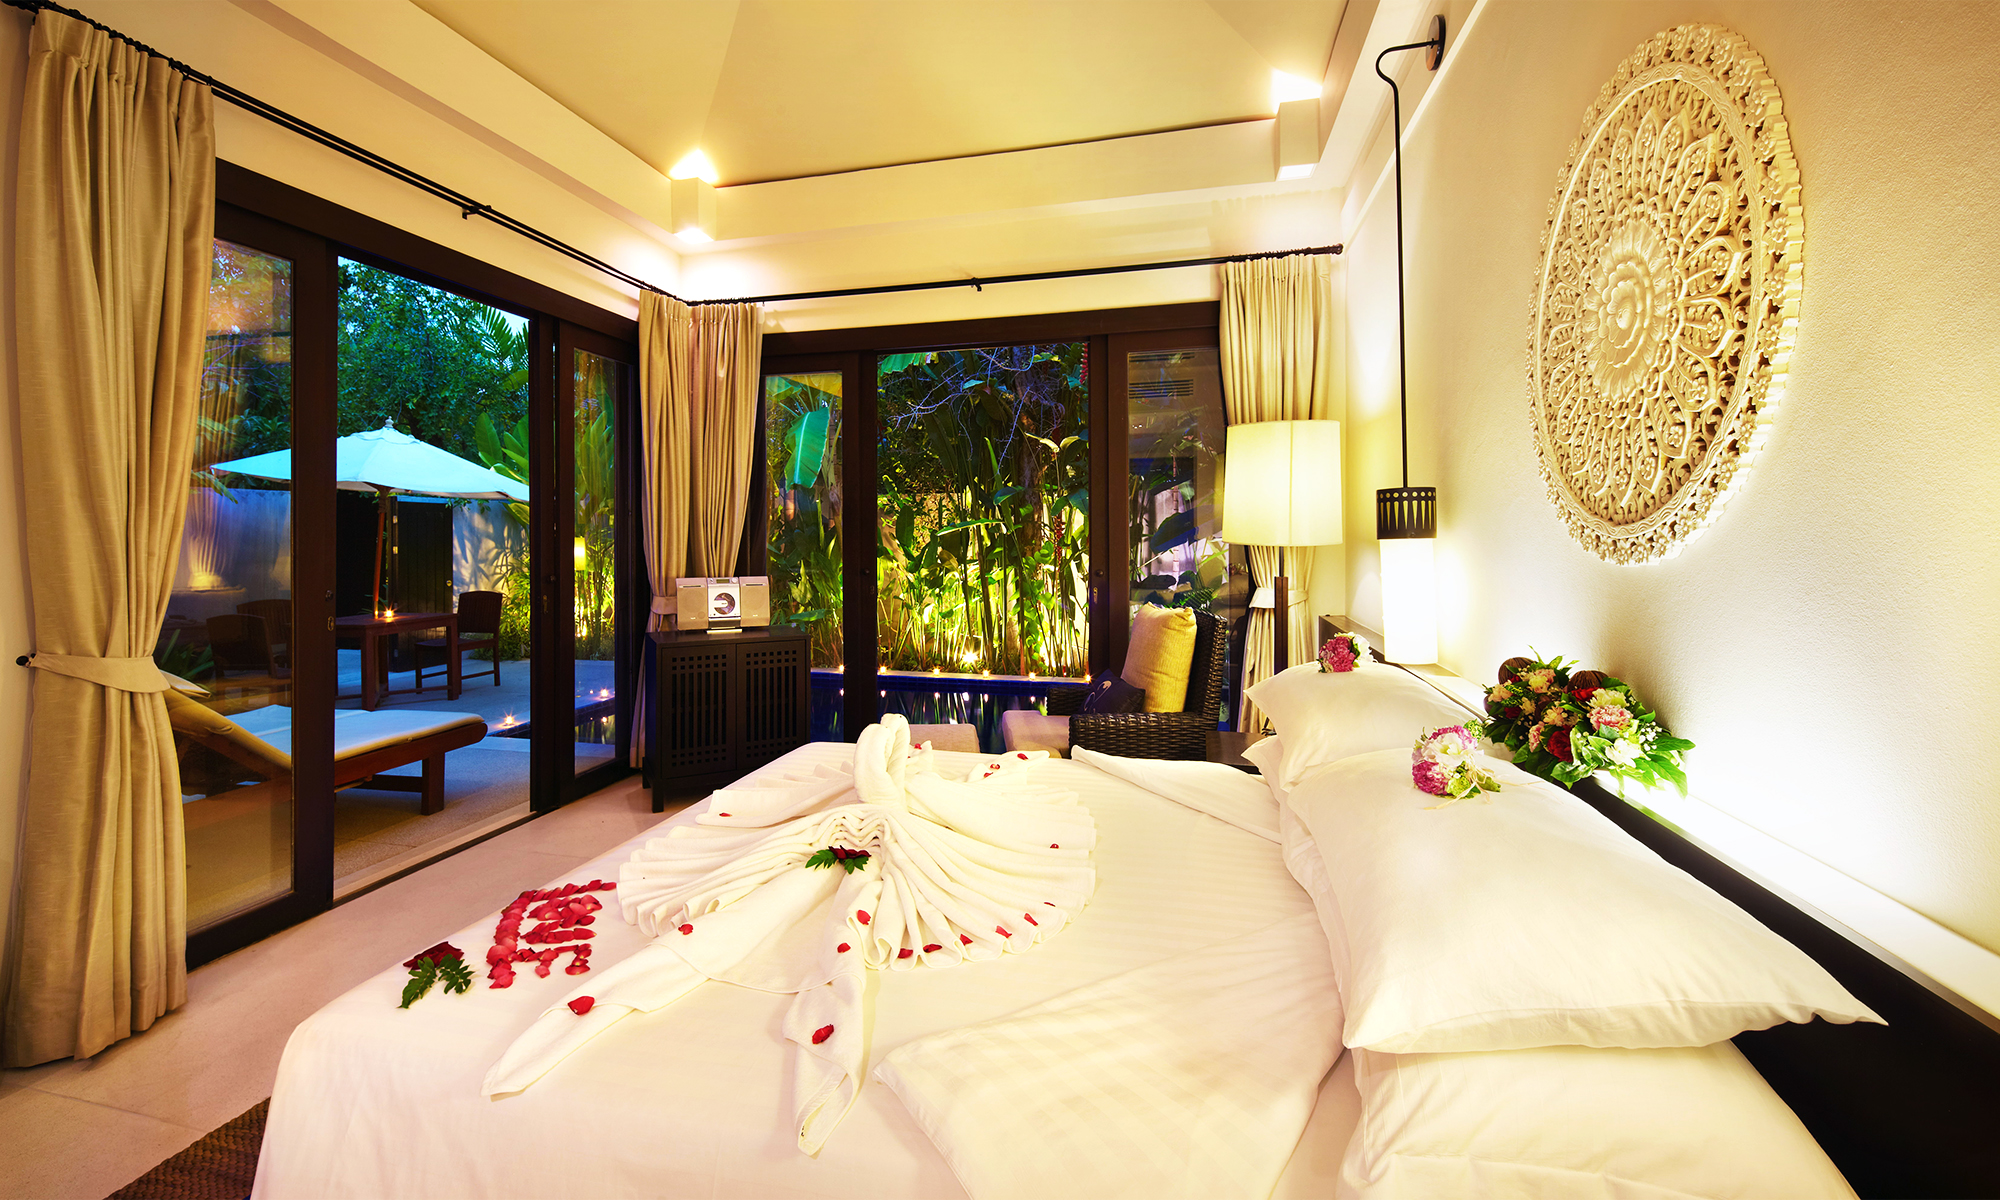 5-Star Beachside Getaway in Hua Hin 3